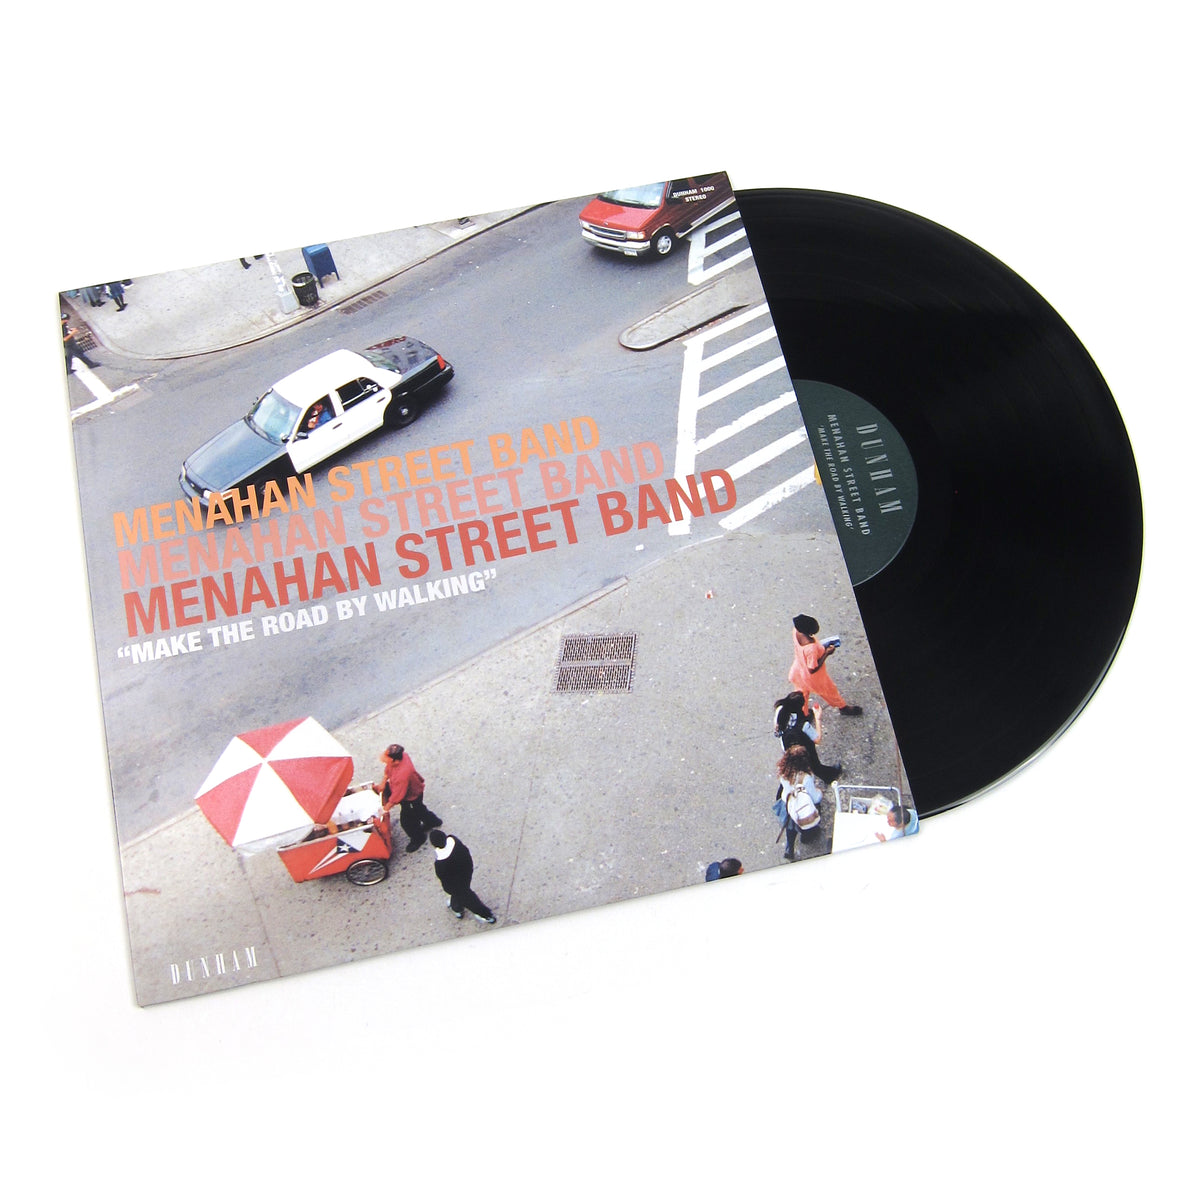 Menahan Street Band: Make The Road By Walking Vinyl LP